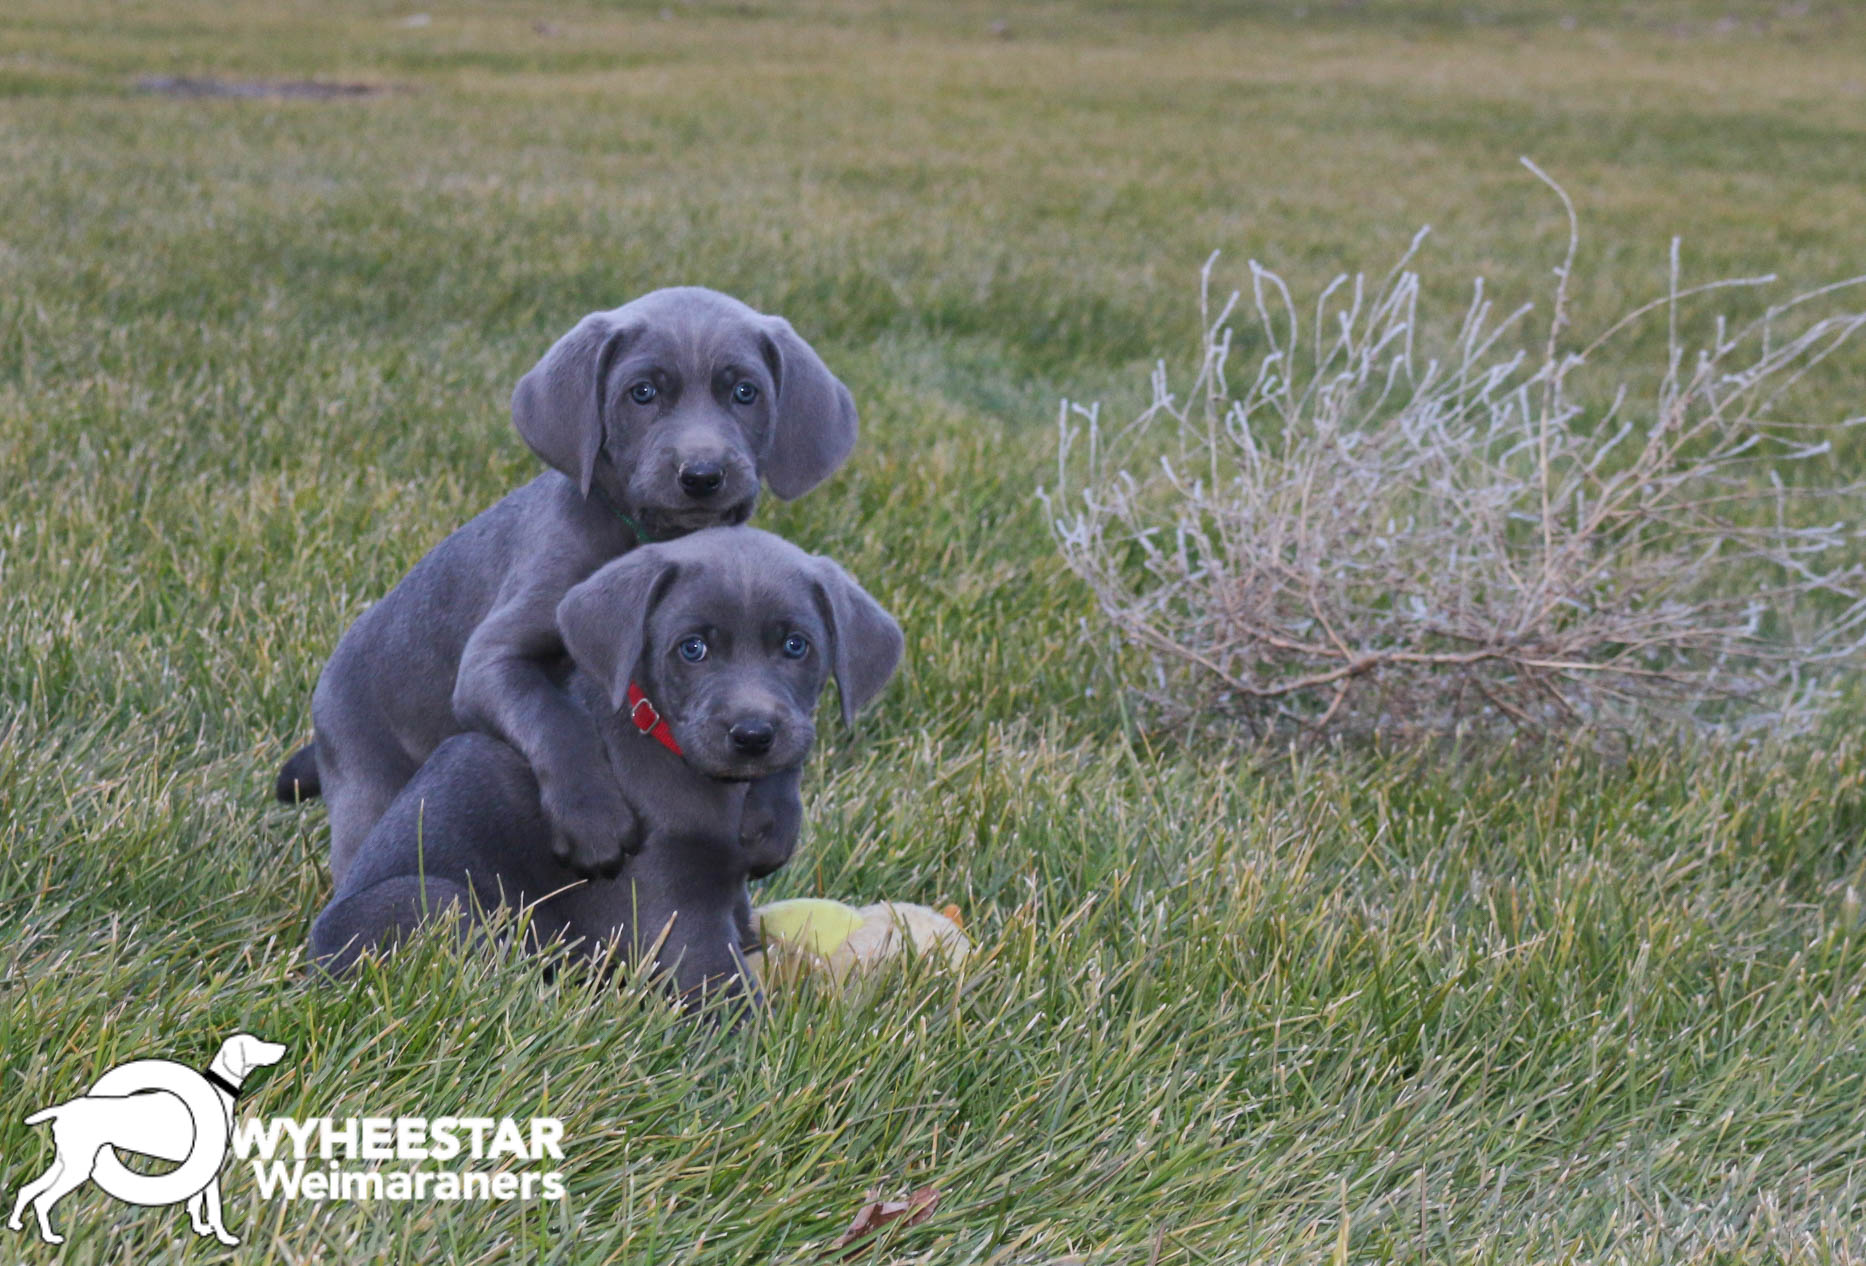 Holistic For The Weimaraner Owyheestar Weimaraners News